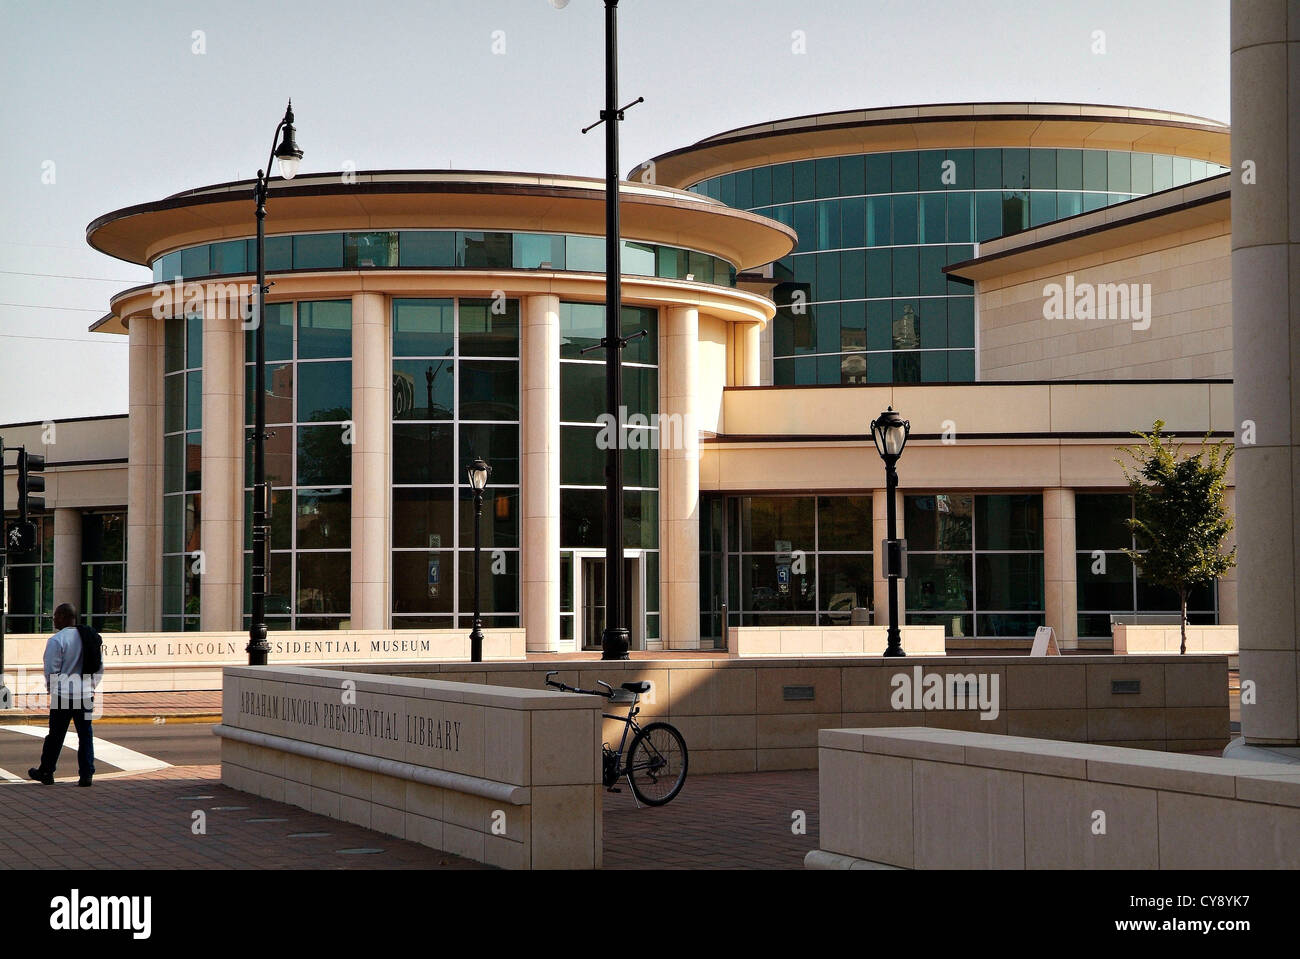 Springfield Illinois USA State Capital and home of the Lincoln Library and Museum.  Museum exterior. - Stock Image